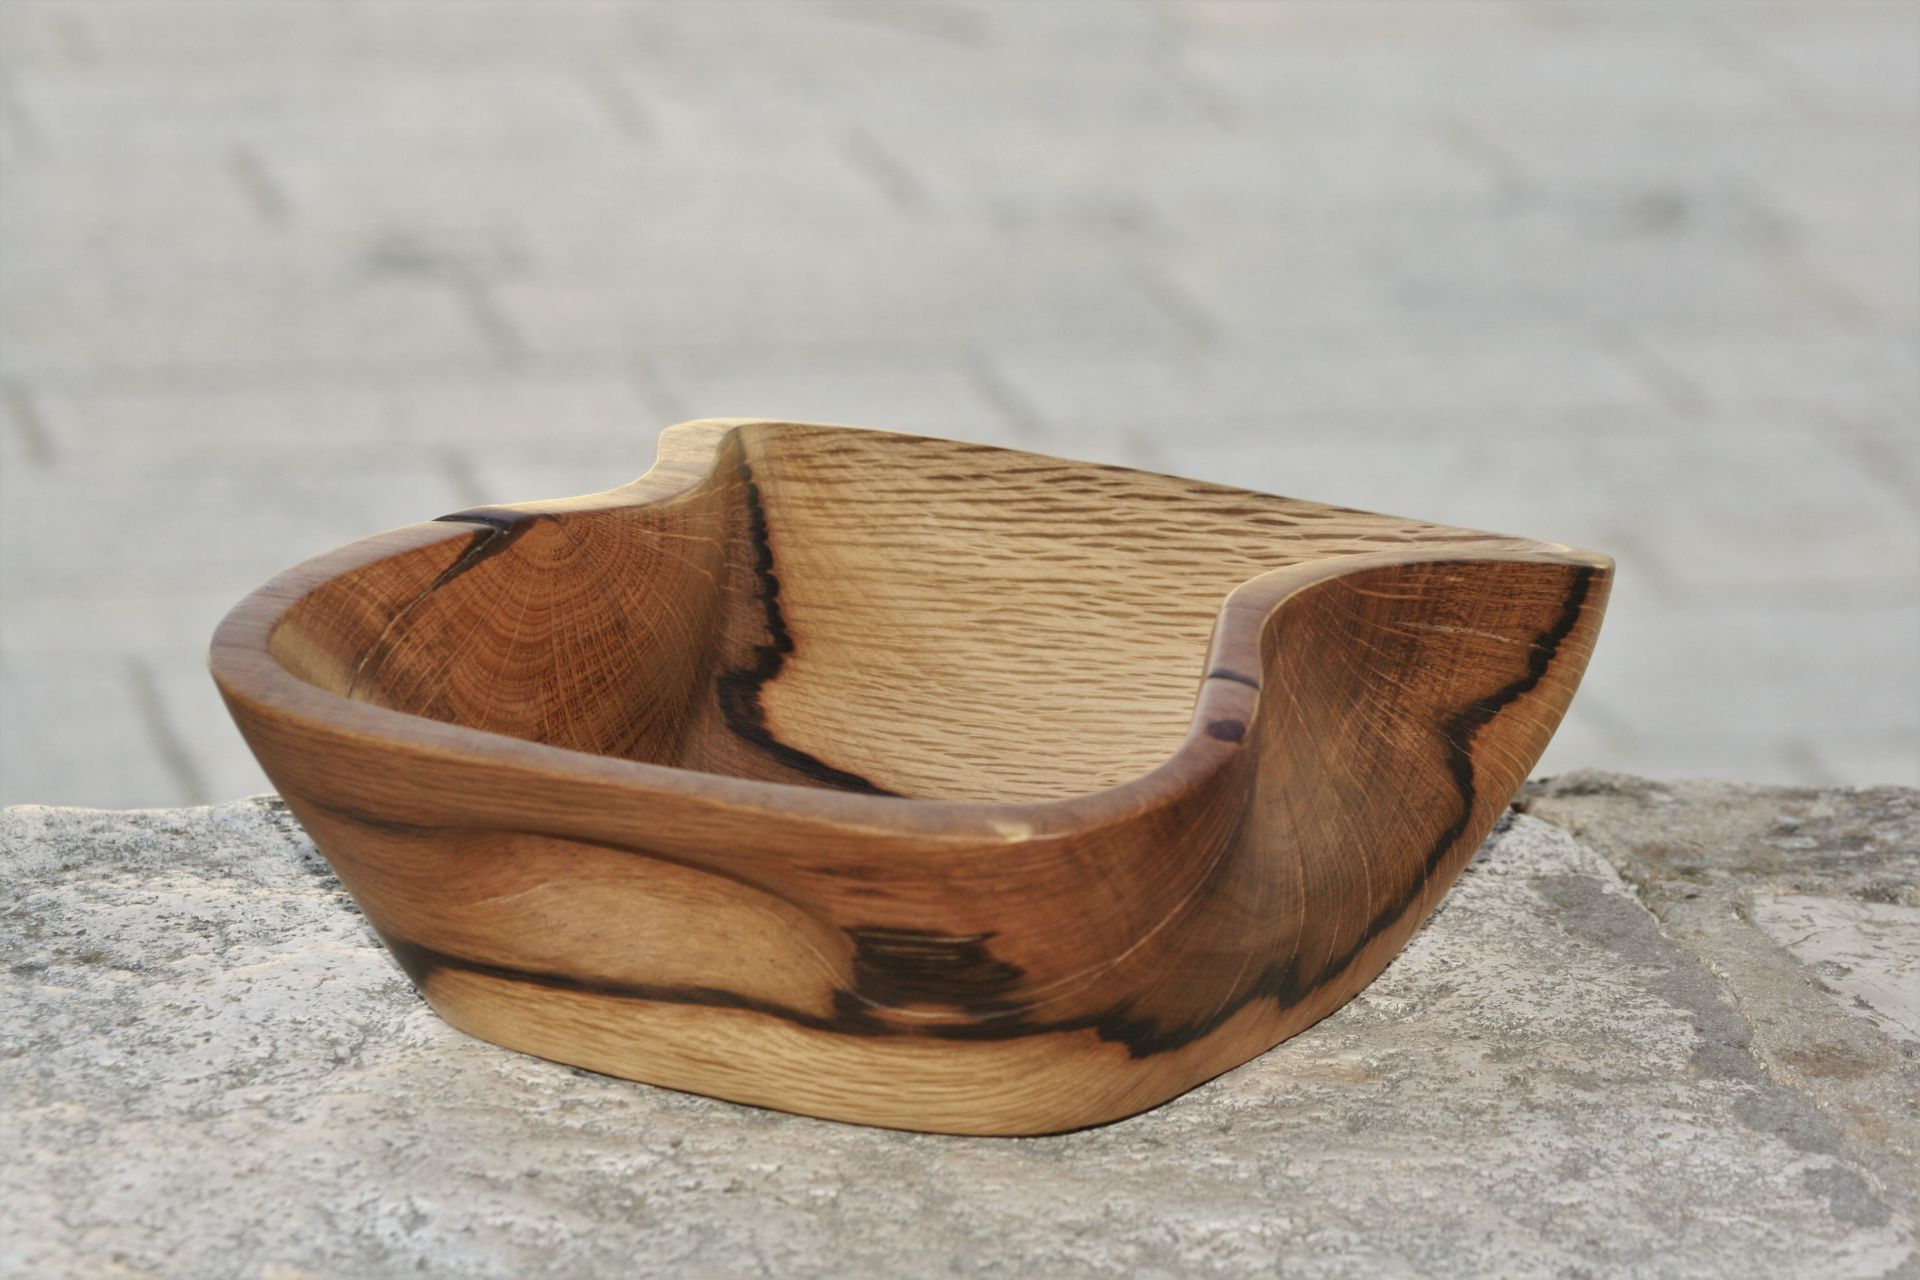 holm oak wood unique handmade bowl sanisio design